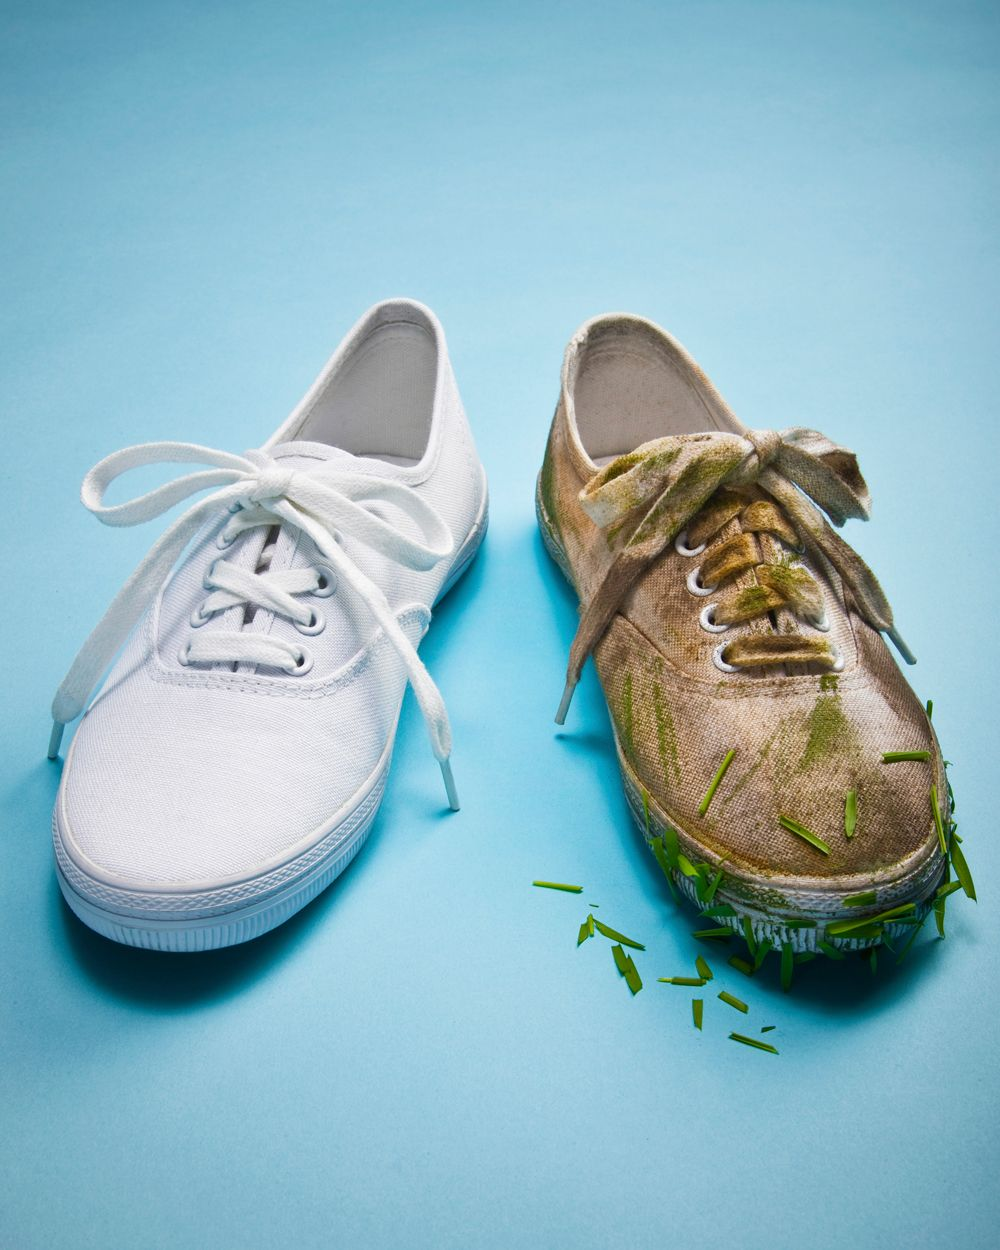 shoes cleaning service near me